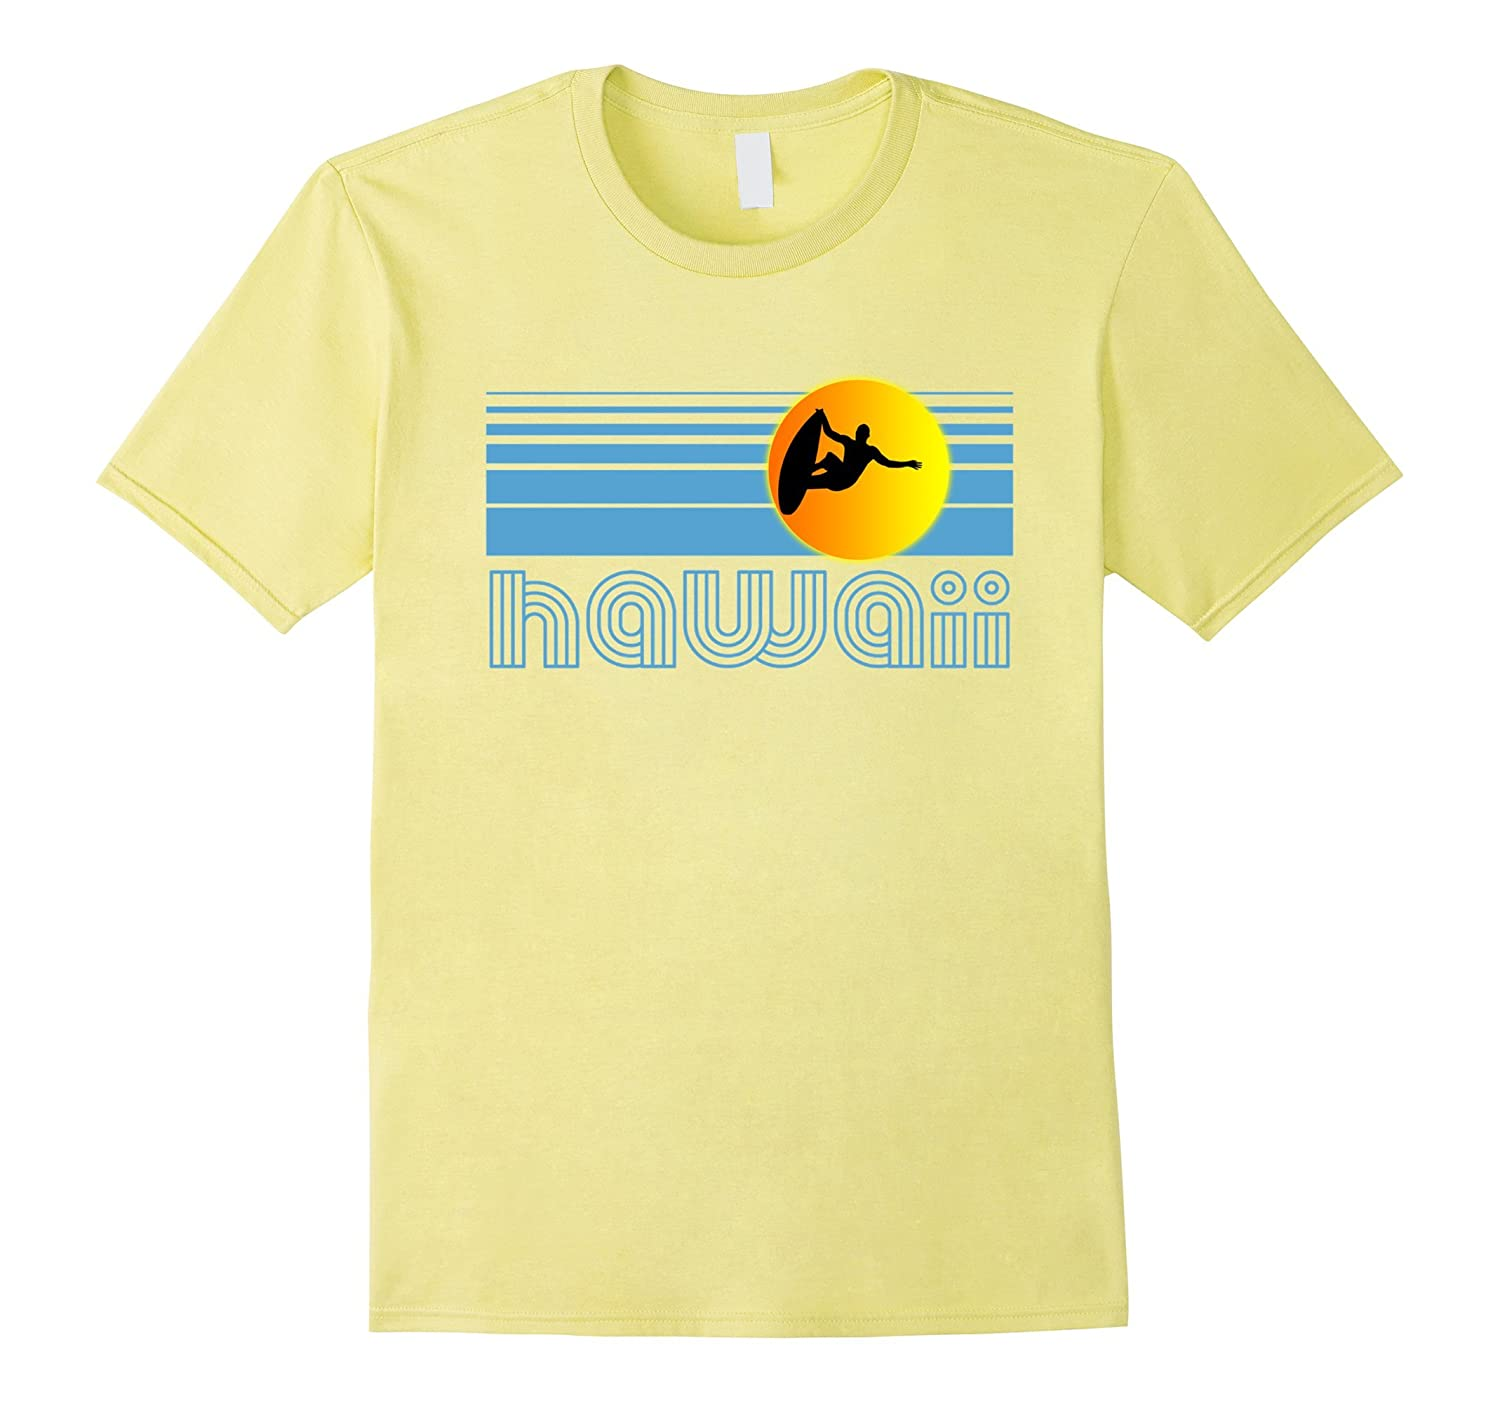 bf172c391 The product is already in the wishlist! Browse Wishlist. HAWAII Surfing T  Shirt Surfing Apparel Retro Hawaii Surf T-CL